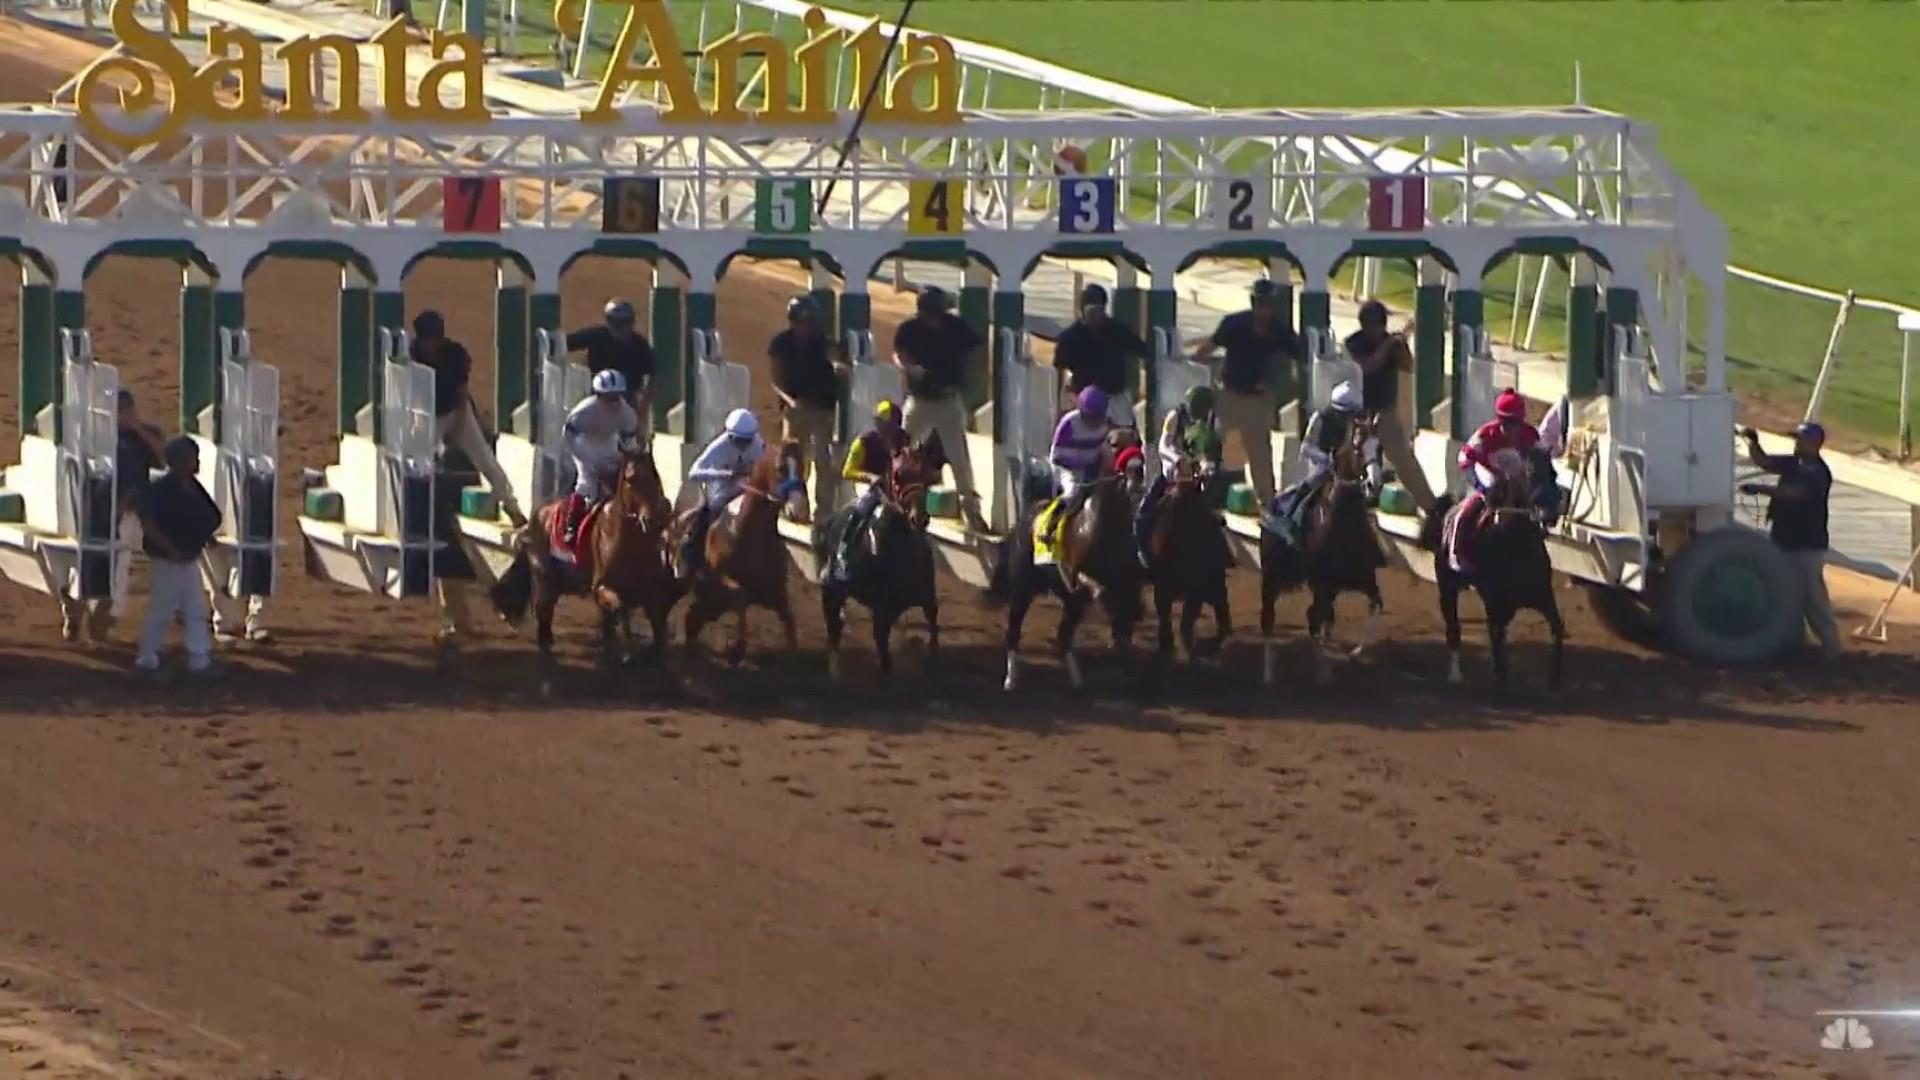 Outrage after 30th horse dies at Santa Anita racetrack since December